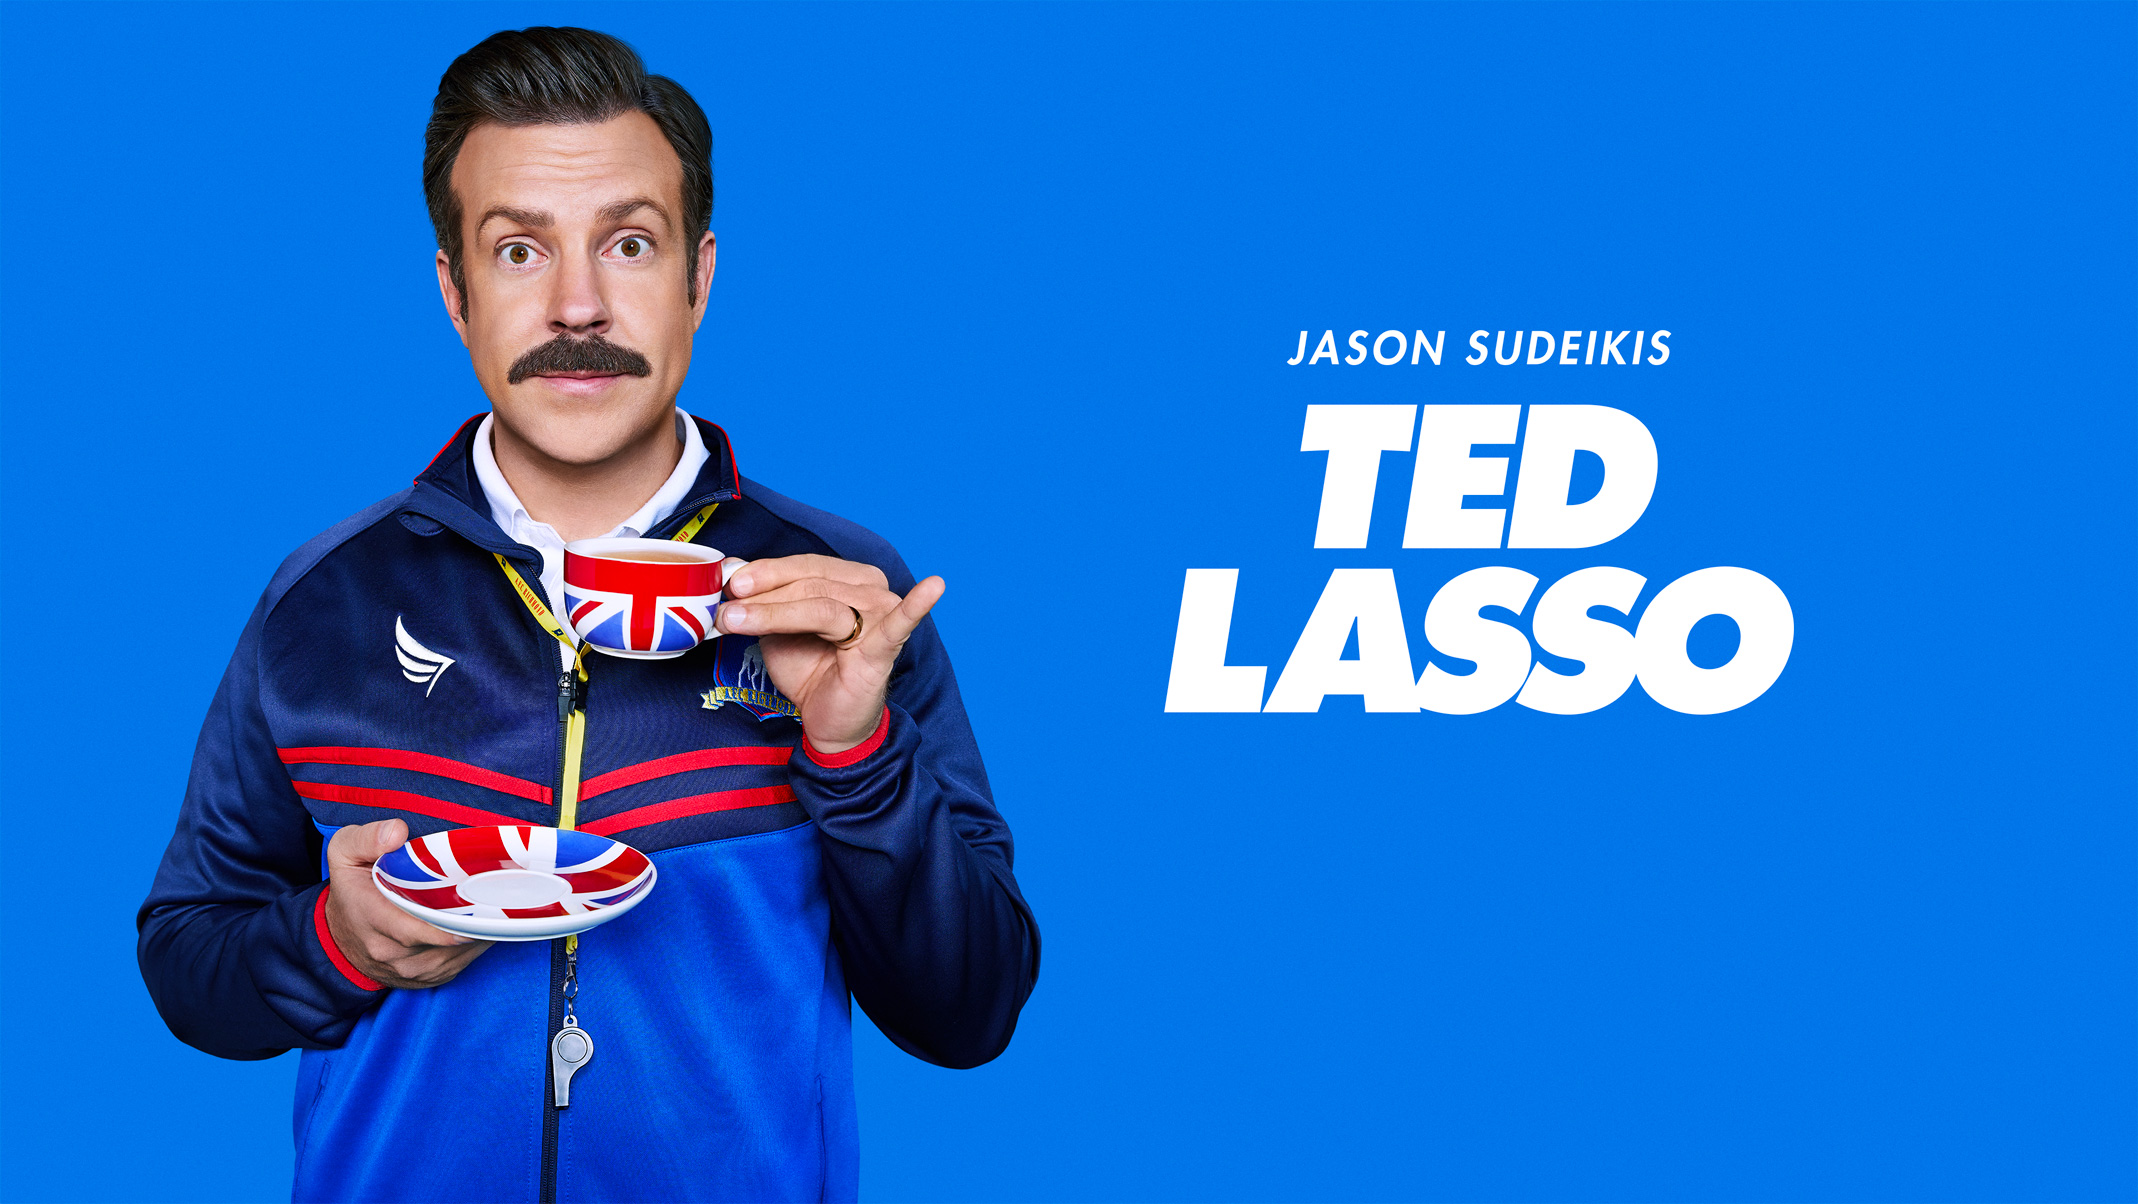 SNL Nerds – Episode 134 – Ted Lasso (Season 1)